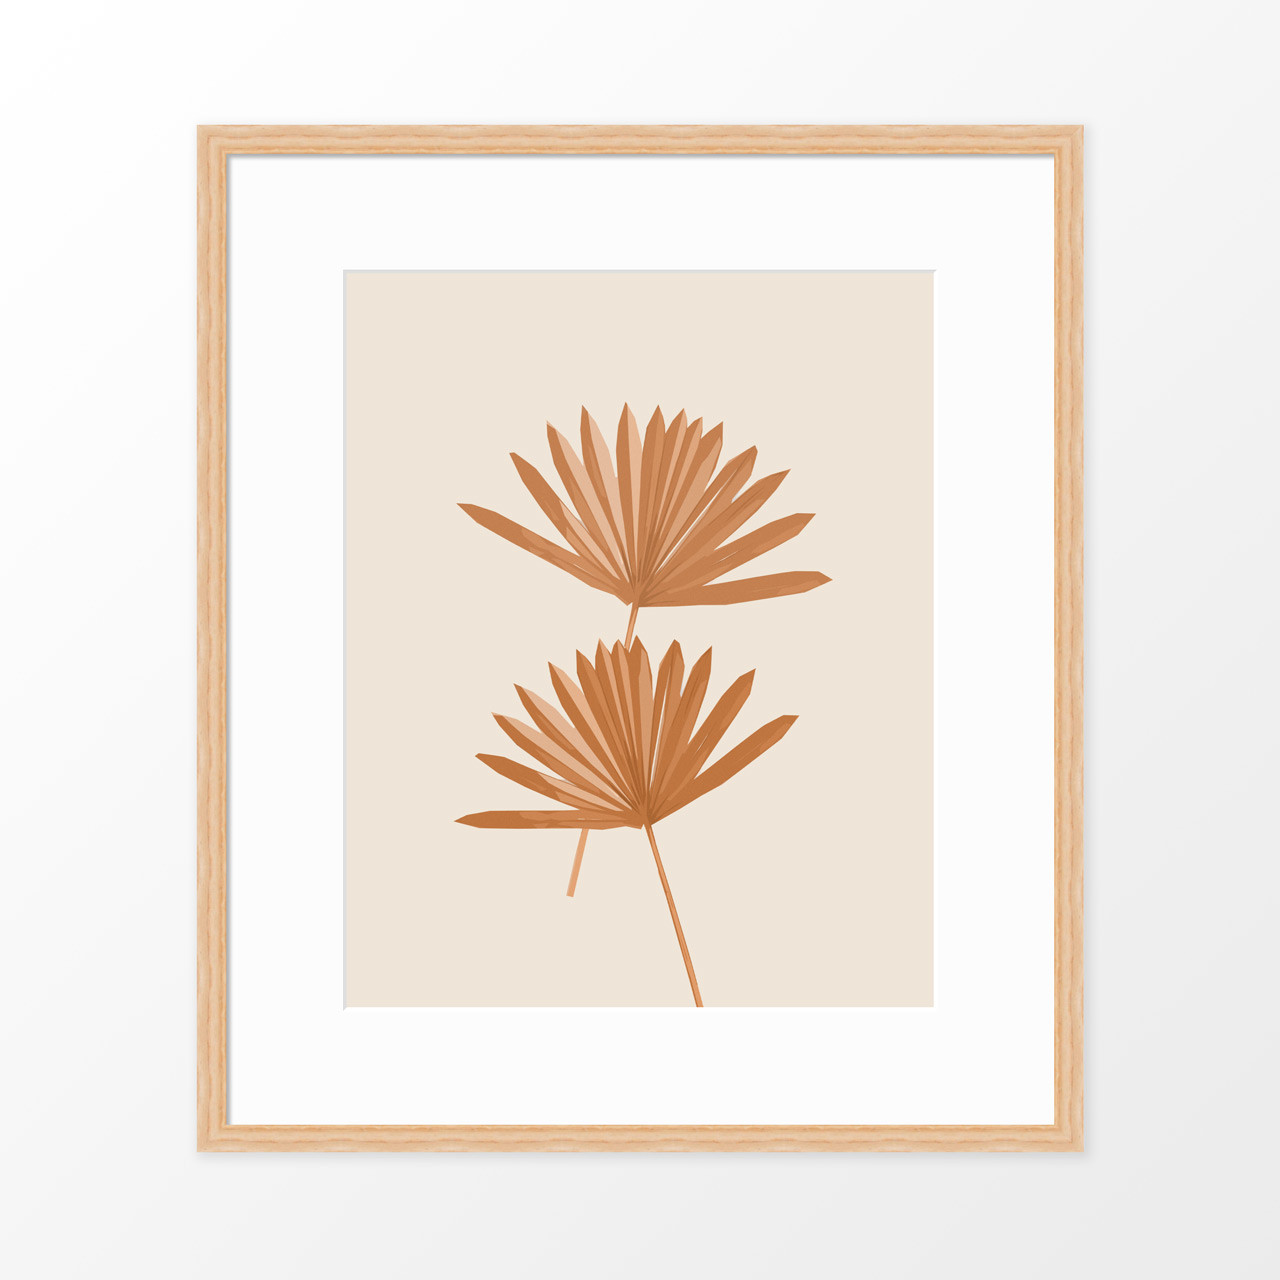 'Sun Palm III' in Sienna Abstract Leaf Art Print from The Printed Home